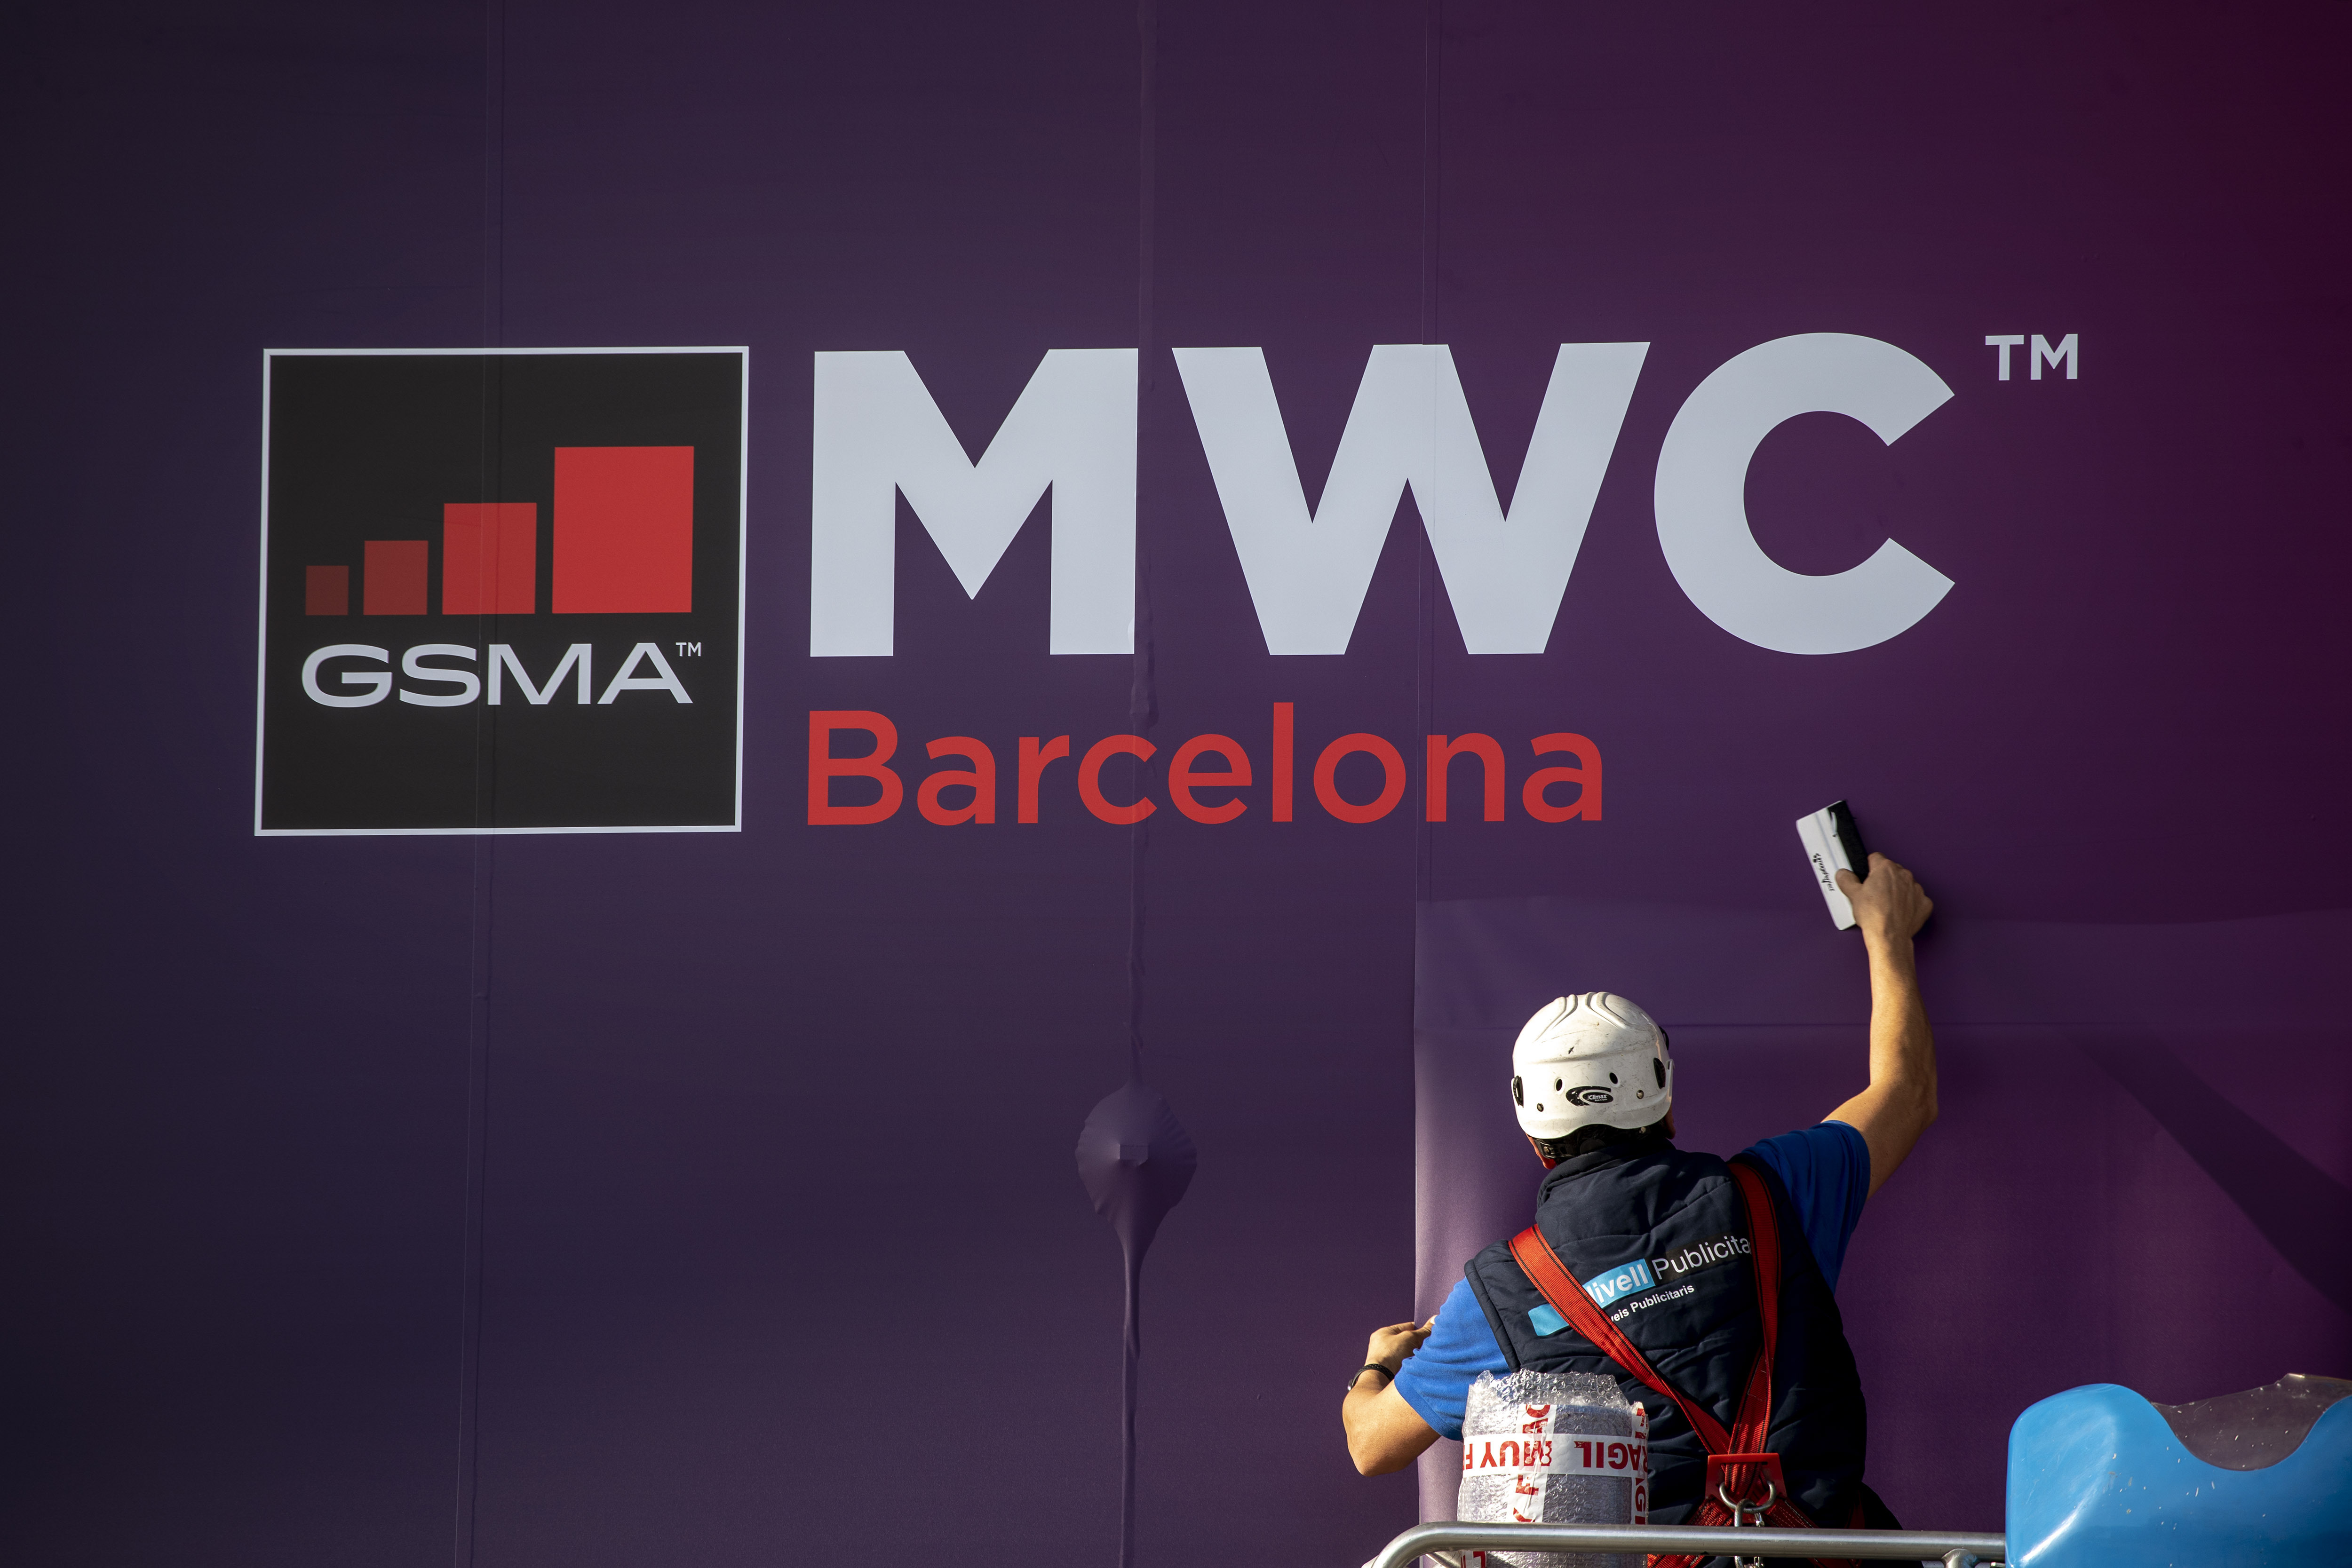 A worker fixes a poster announcing the Mobile World Congress 2020 in a conference venue in Barcelona, Spain on Feb. 11, 2020.